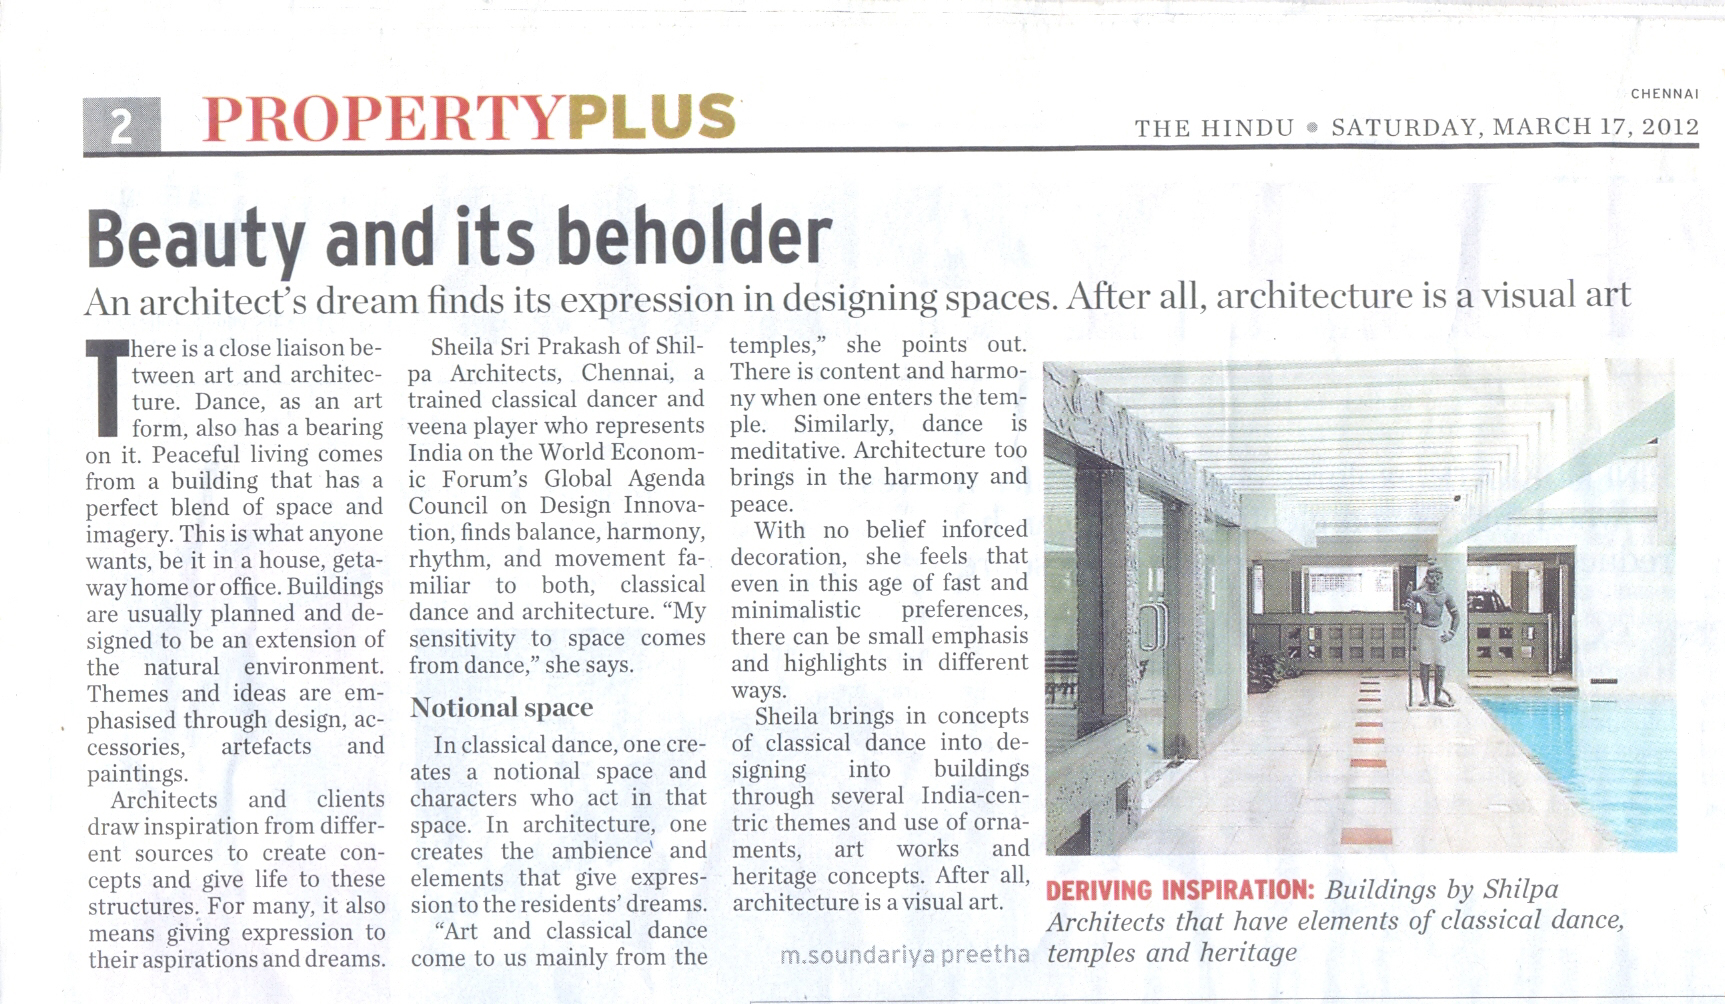 The Hindu, 17 March 2012: Beauty and its beholder - An Architect's dream finds its expression in designing spaces. After all, architecture is a visual art.